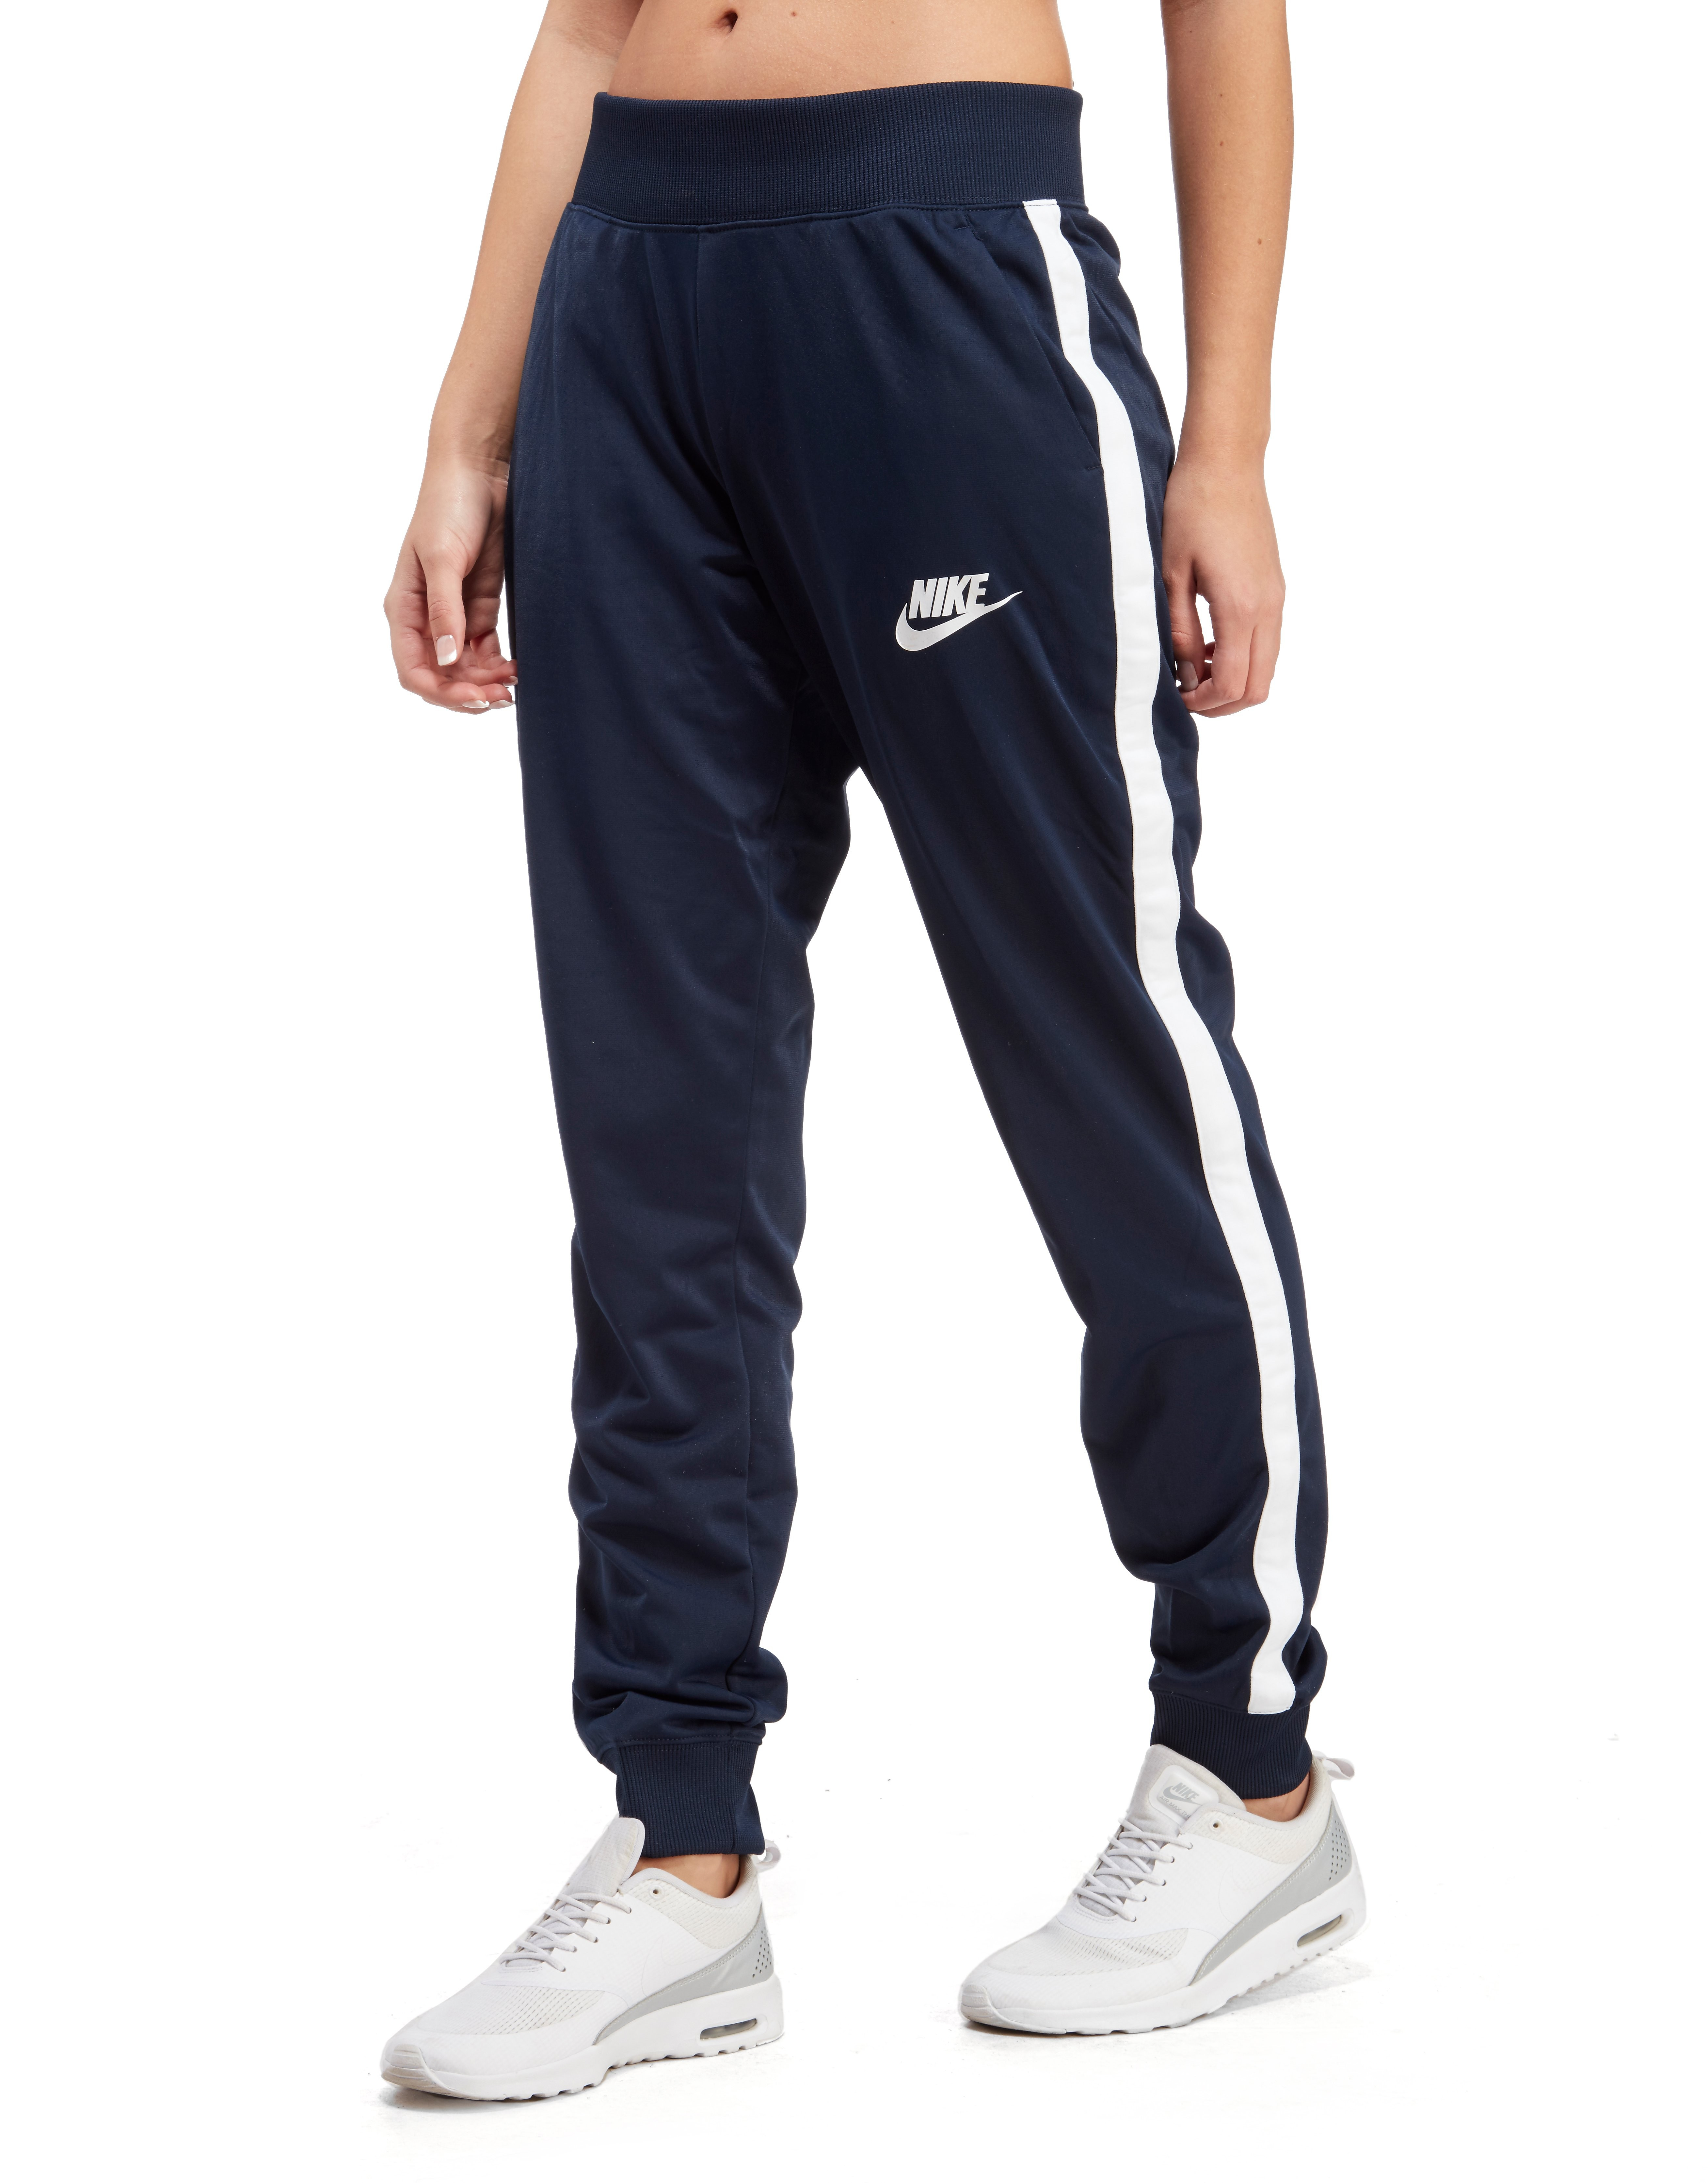 Paine Gillic hermosa semiconductor  Nike Poly Track Pants - Navy/White - Womens - Sports King Store